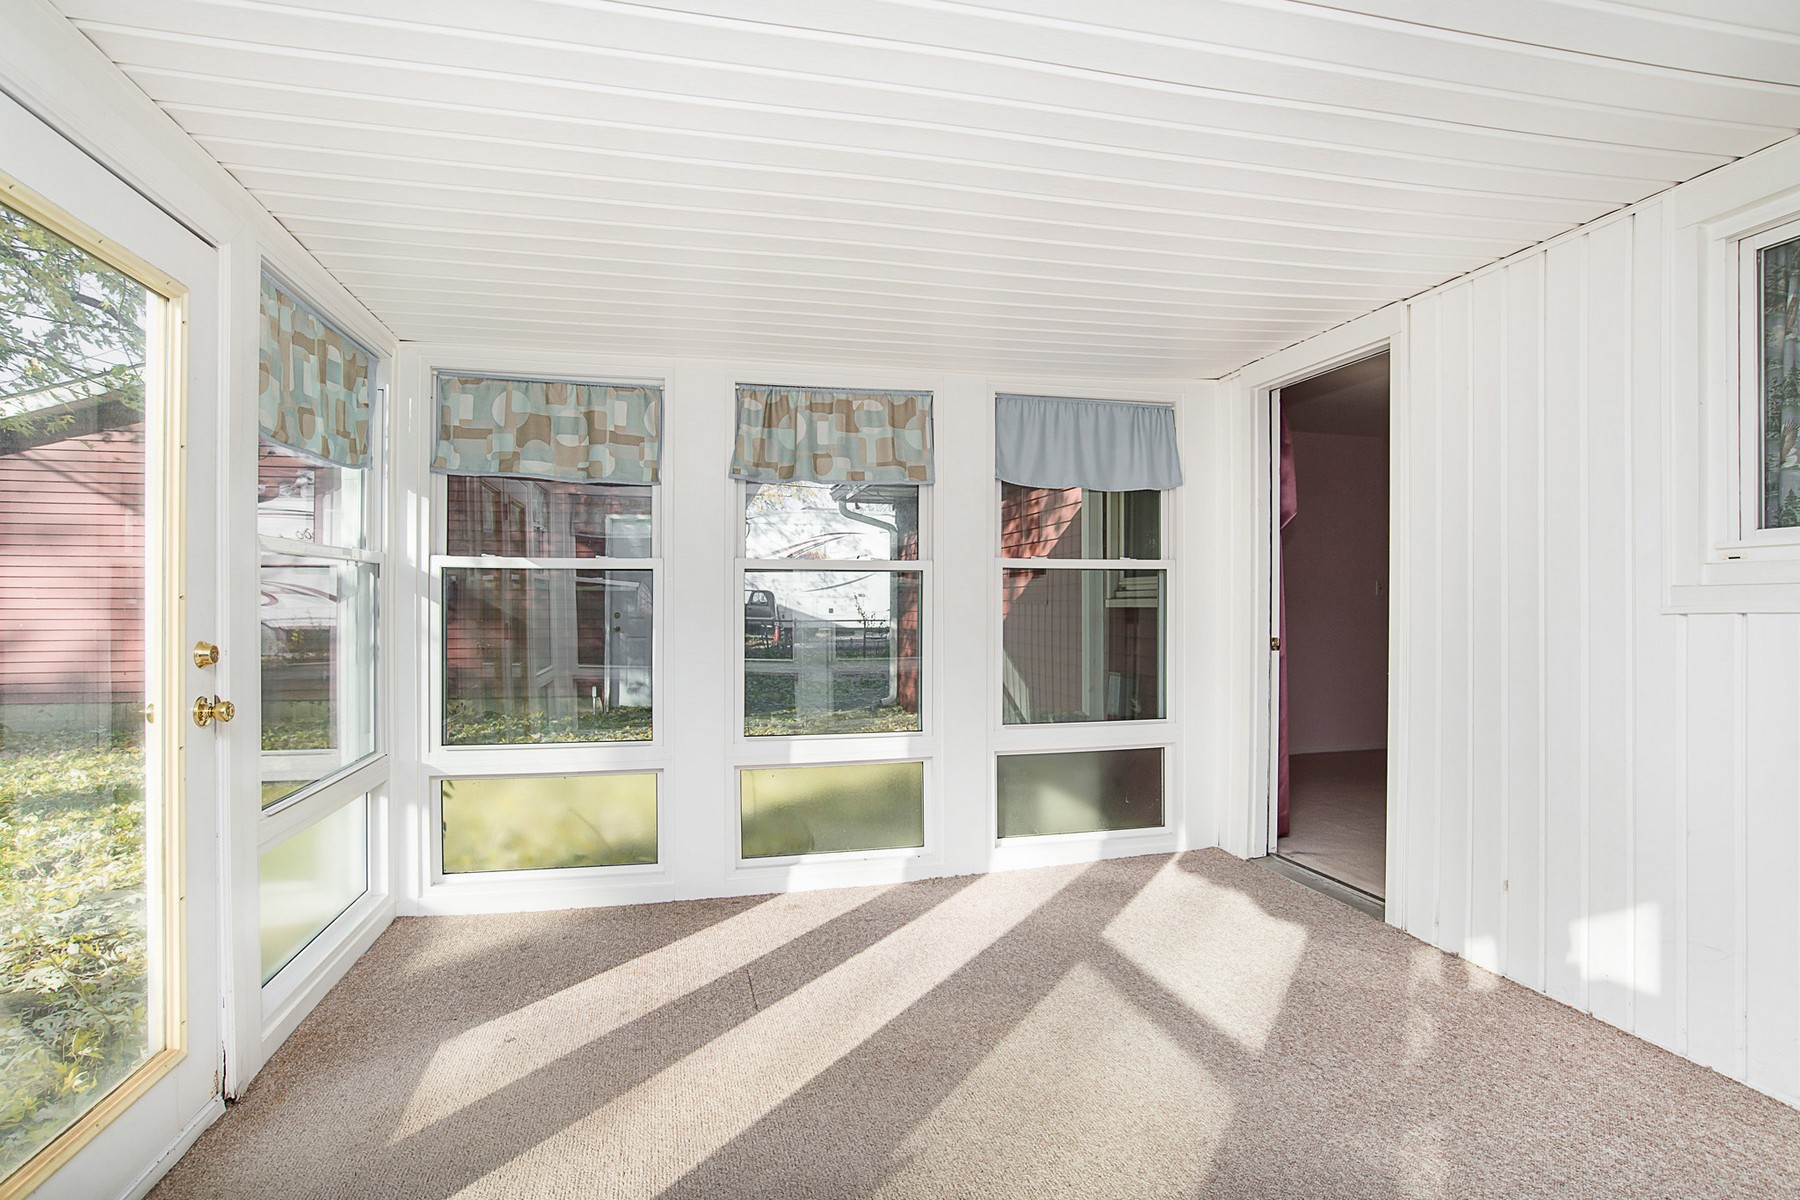 Additional photo for property listing at Great 2 Bedroom Home in Lawrence 5262 N Richardt Ave Lawrence, Индиана 46226 Соединенные Штаты